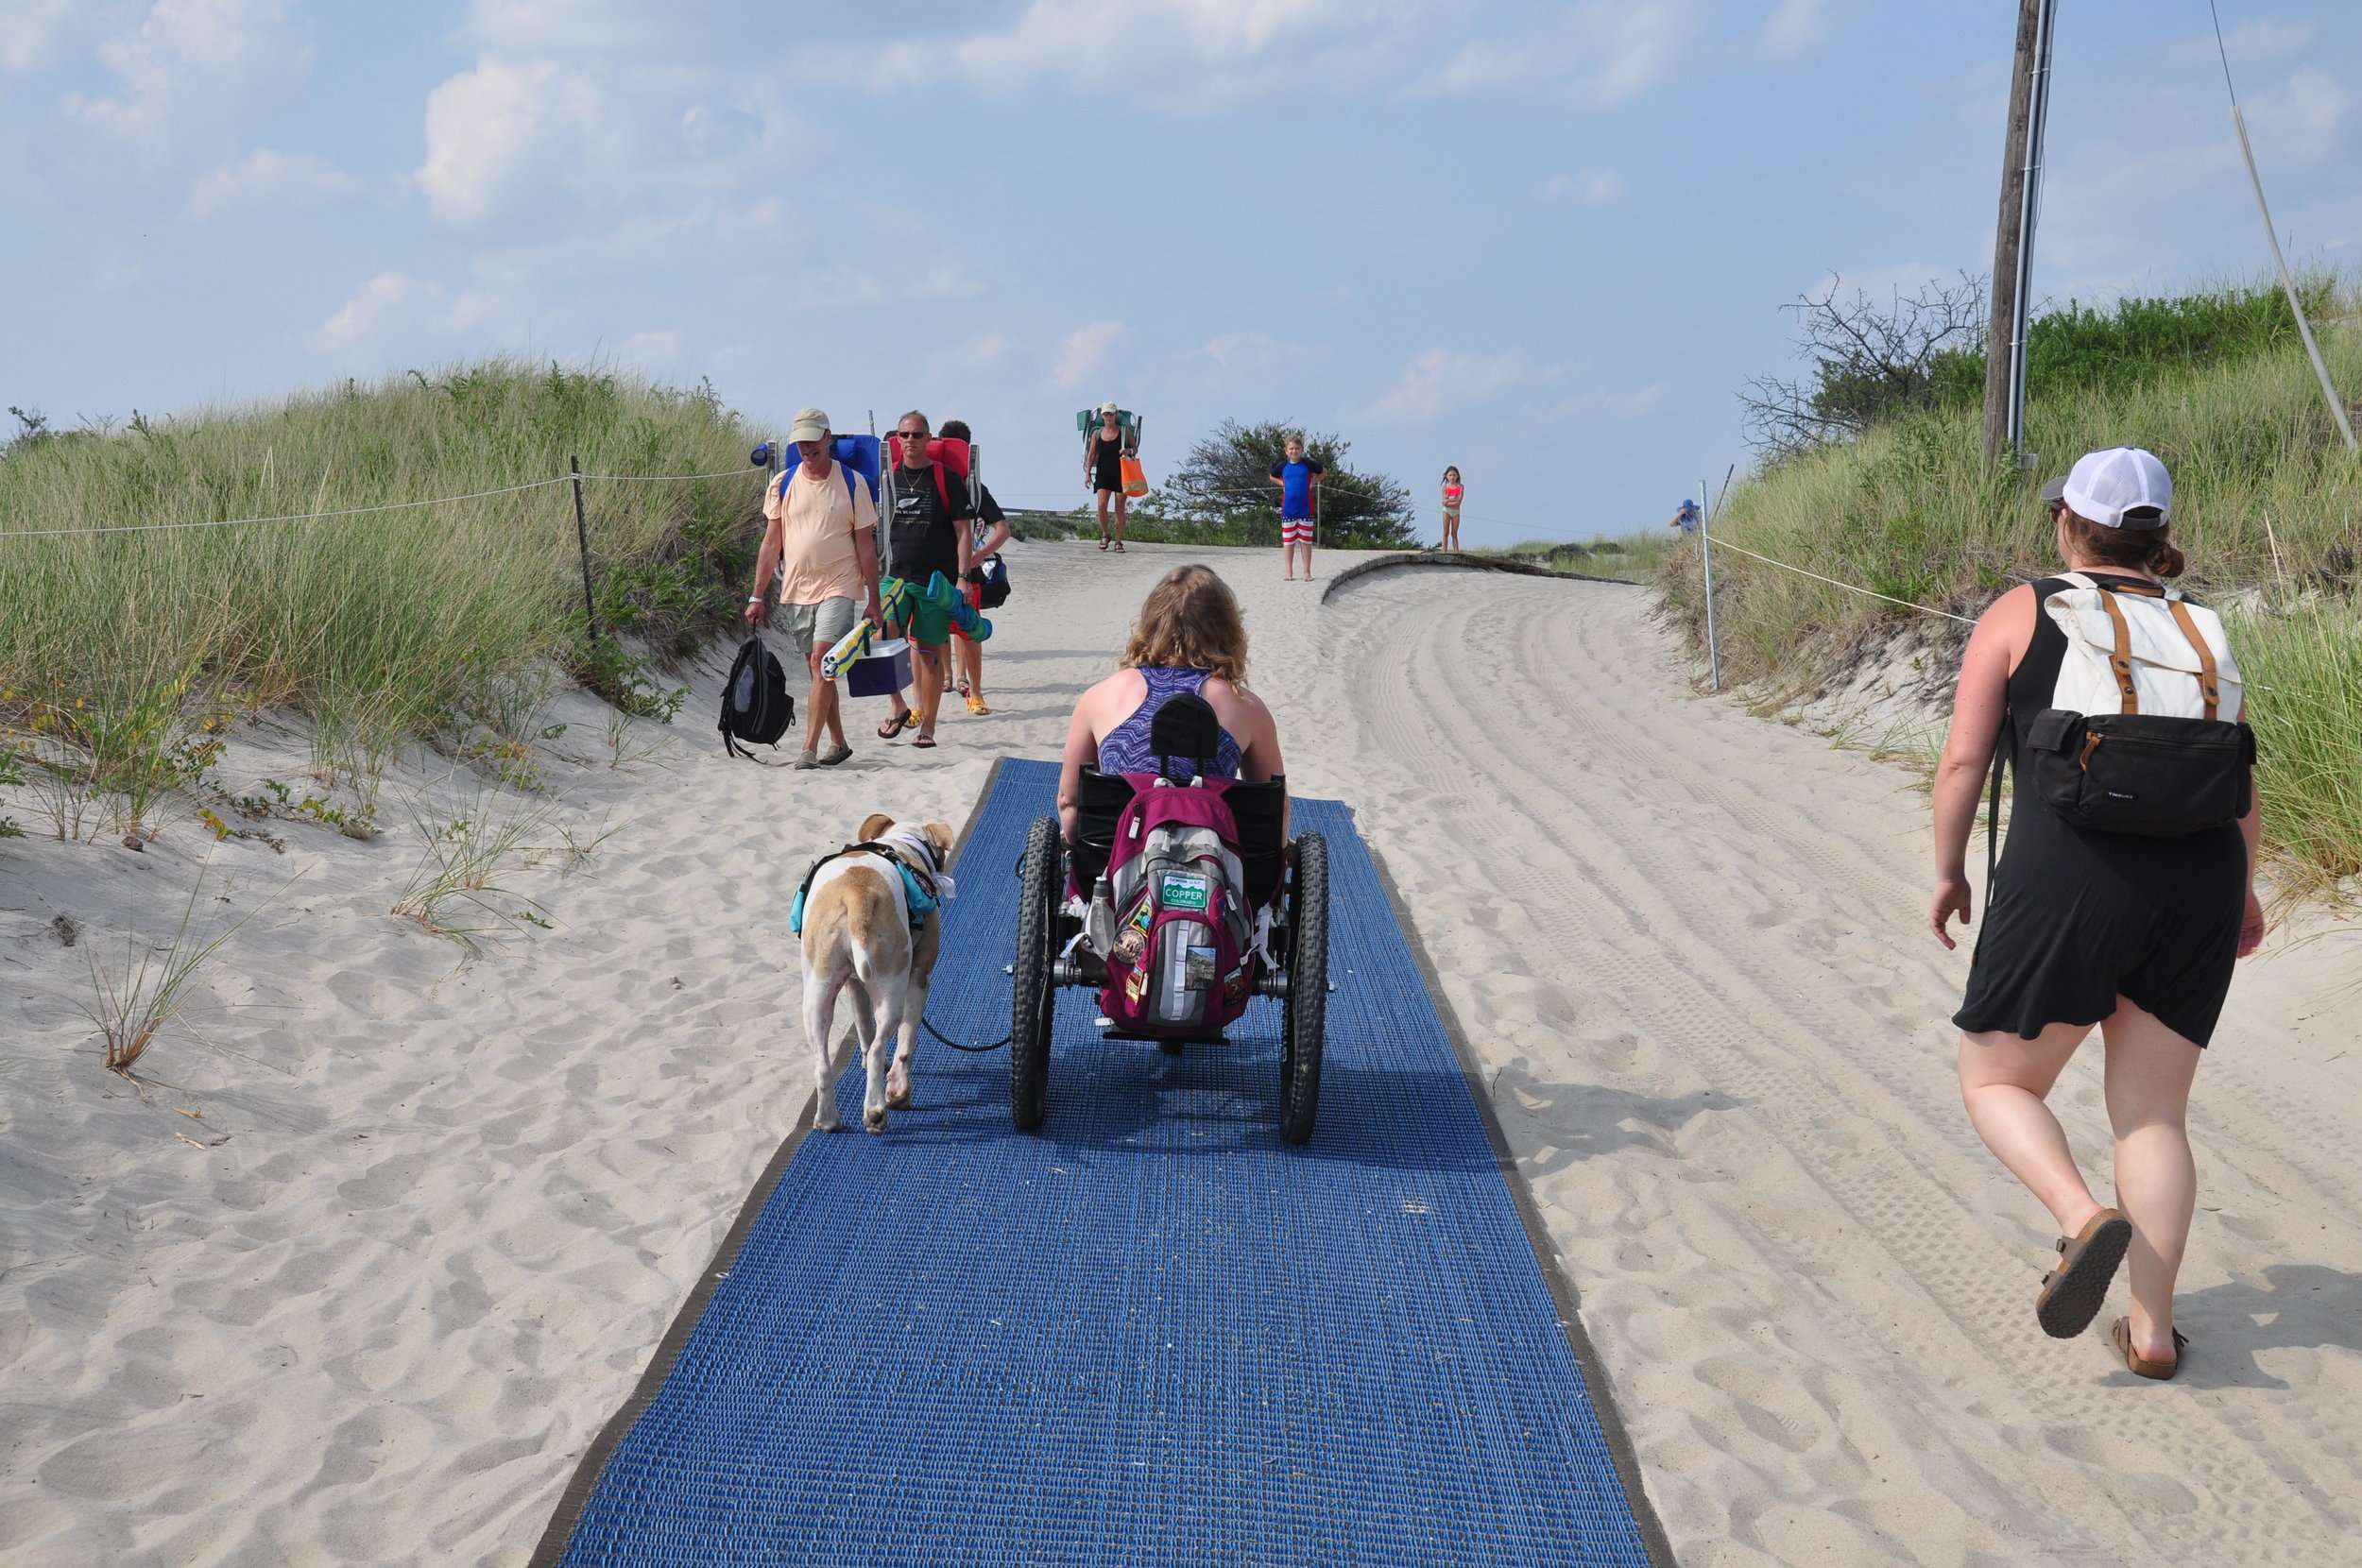 The access mat made going over the sand dune a lot easier.